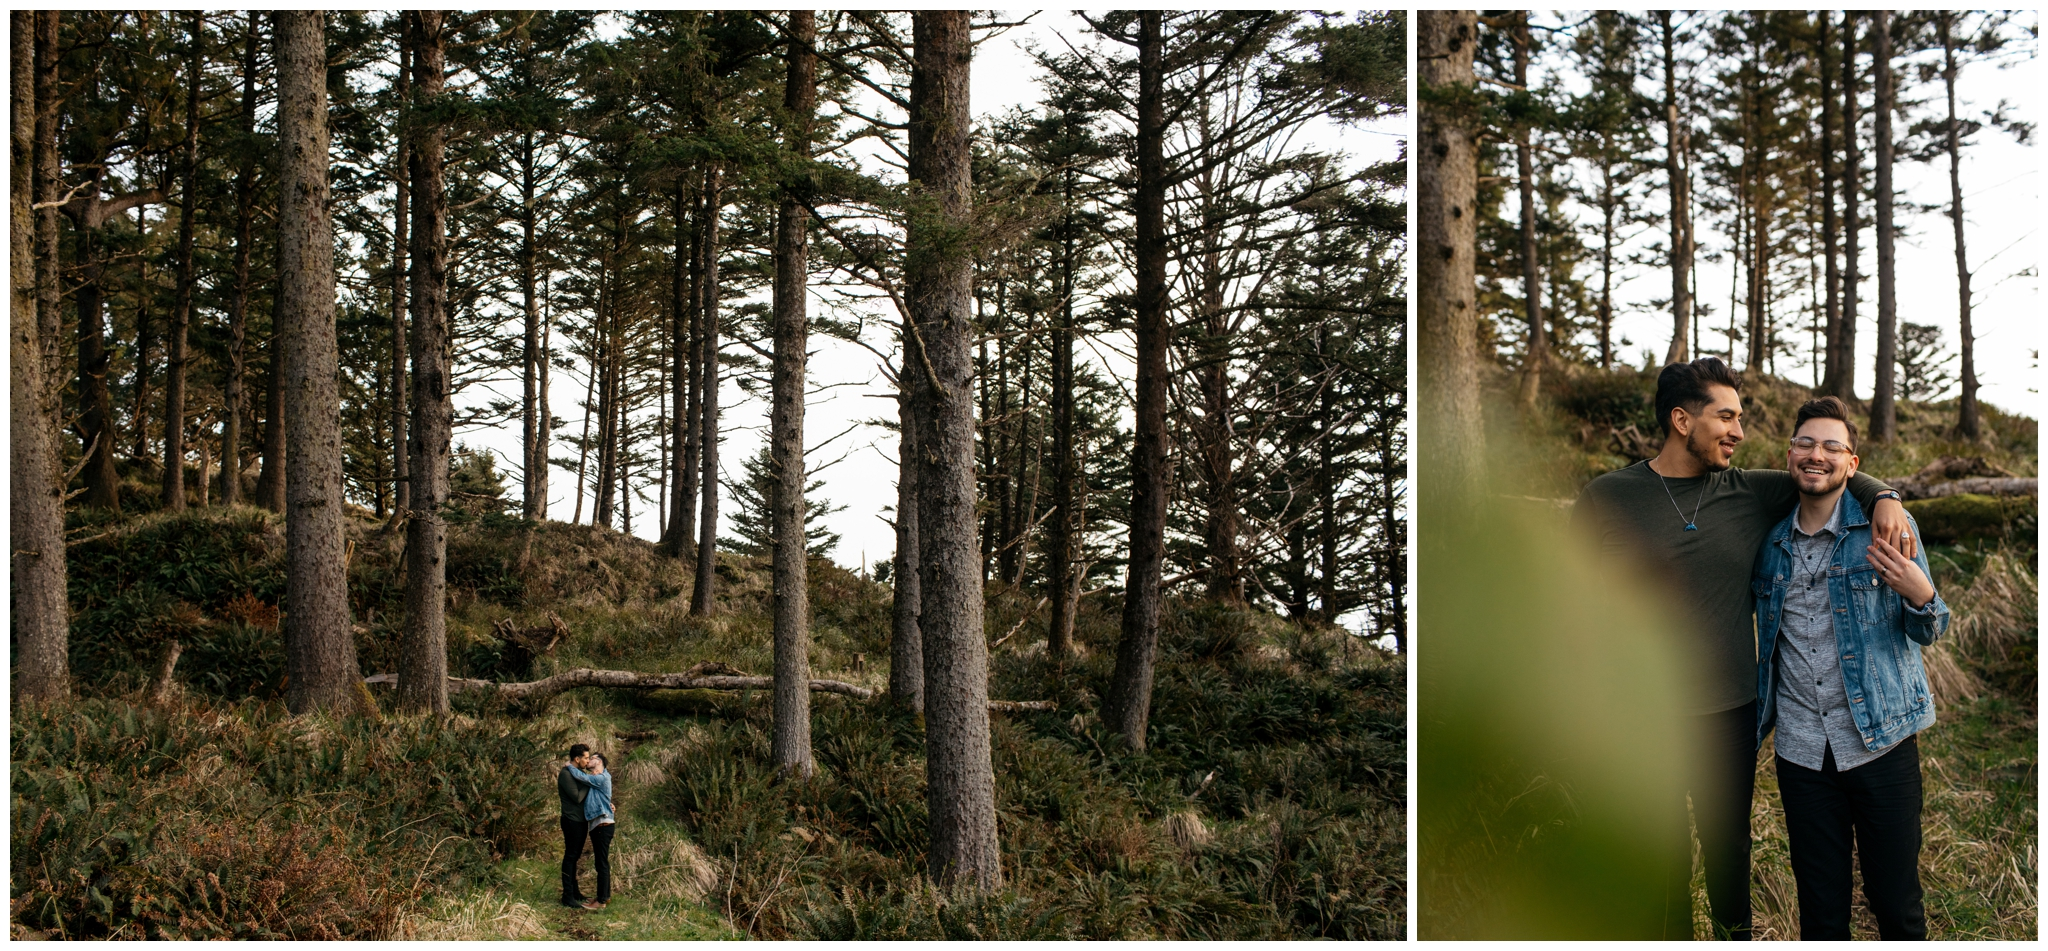 Cannon Beach Engagement With Brittney Hyatt Photography Seattle Wedding and Elopement Photographer. Same-sex couple hangs out in the woods at Ecola State Park after proposing to each other on a cliff edge looking over Cannon Beach.